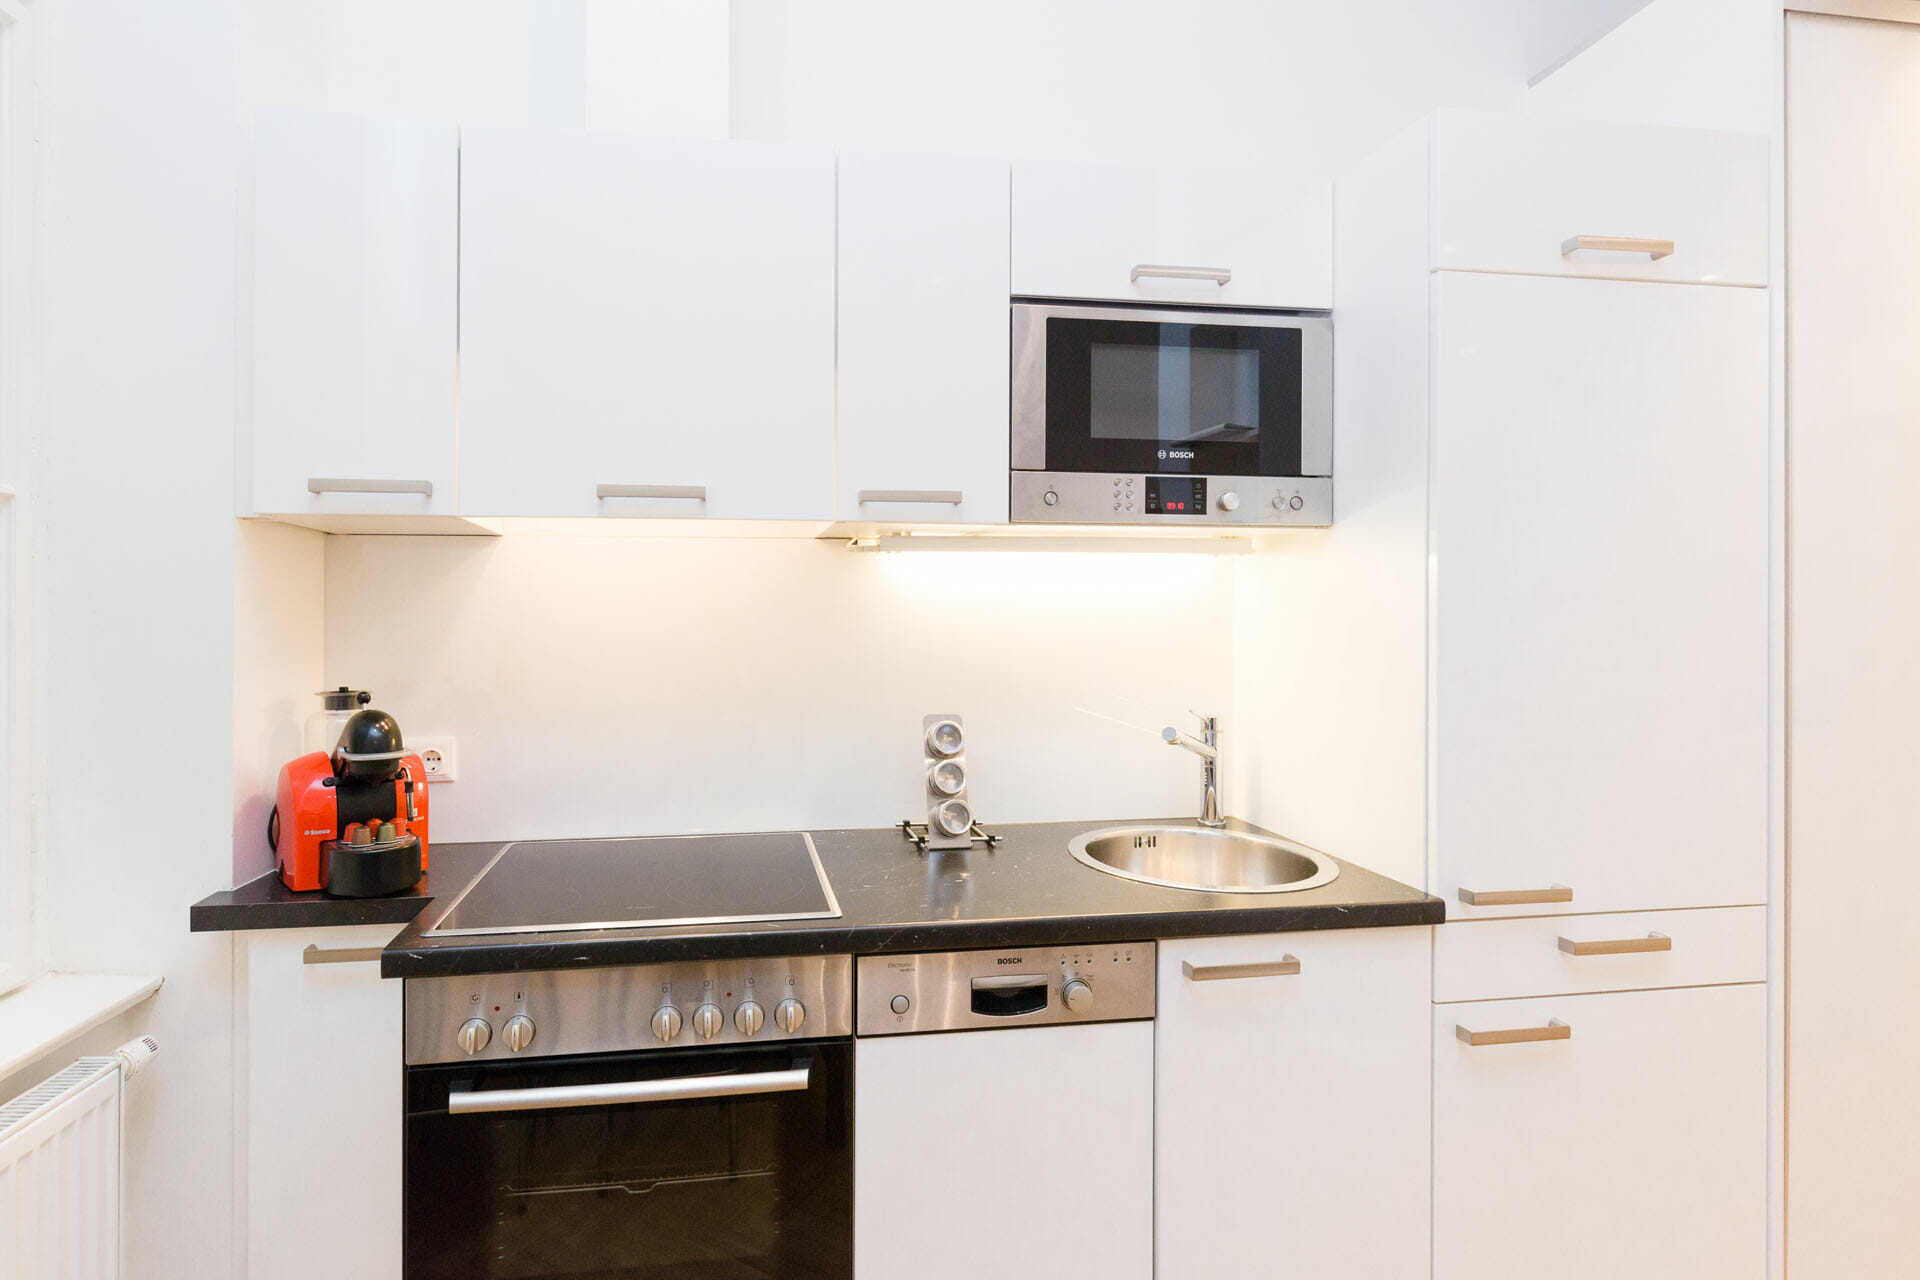 Prestige Apartments in Vienna Austria.Luxury Apartment in Vienna's City Center.Graben 28. , 2 minutes walking distance to the Stephans Cathedral, Kaerntnerstrasse and Kohlmarkt (famous shopping street).